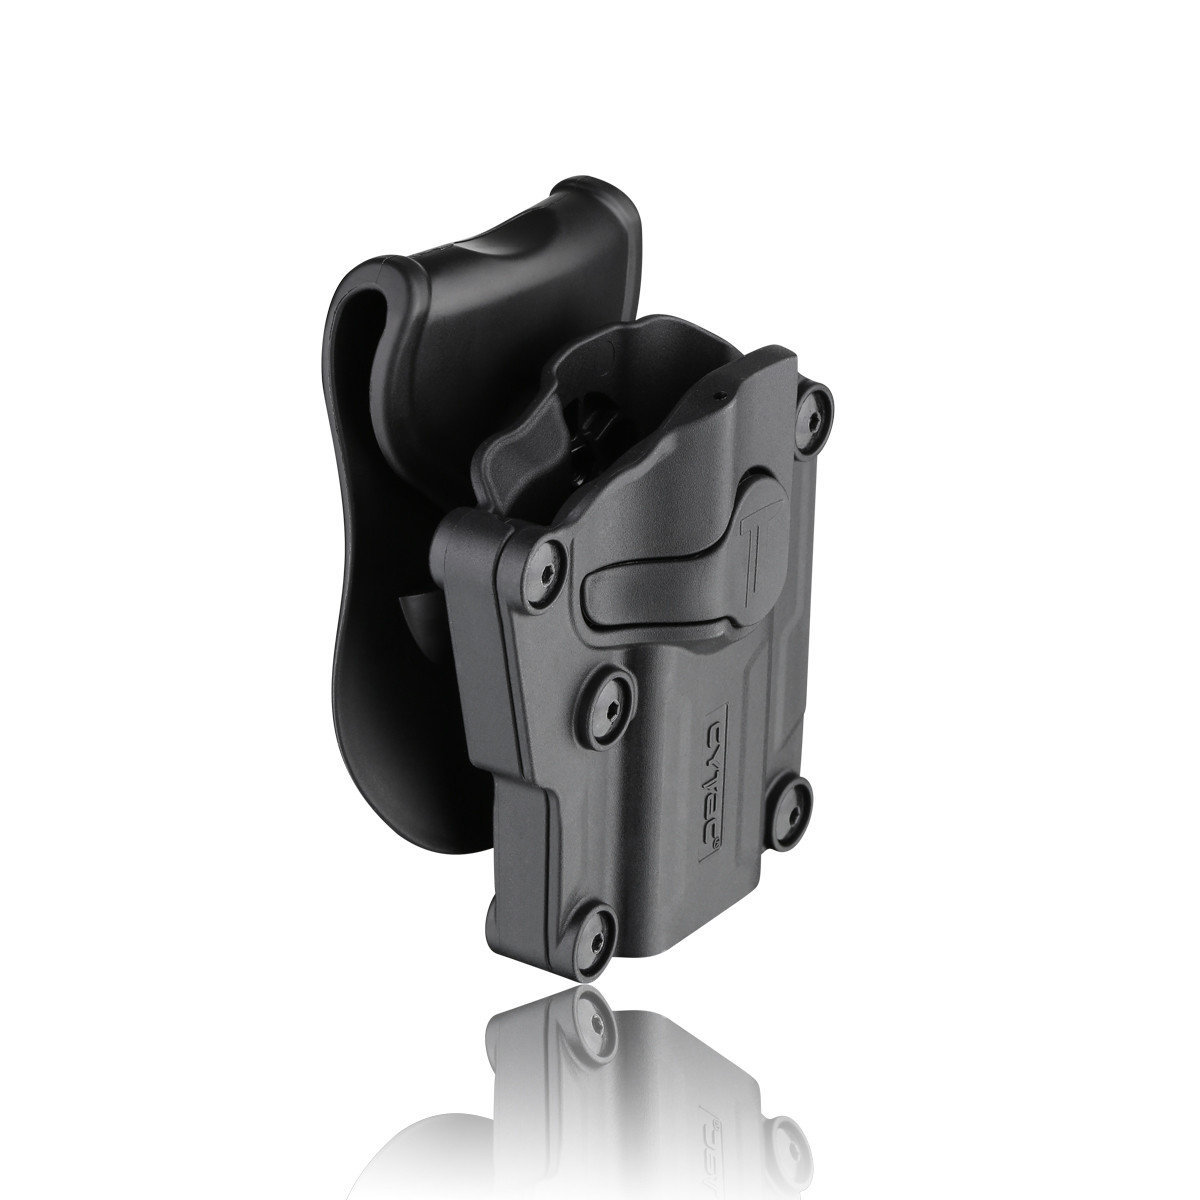 View larger image of Cytac Universal OWB Holster - RH